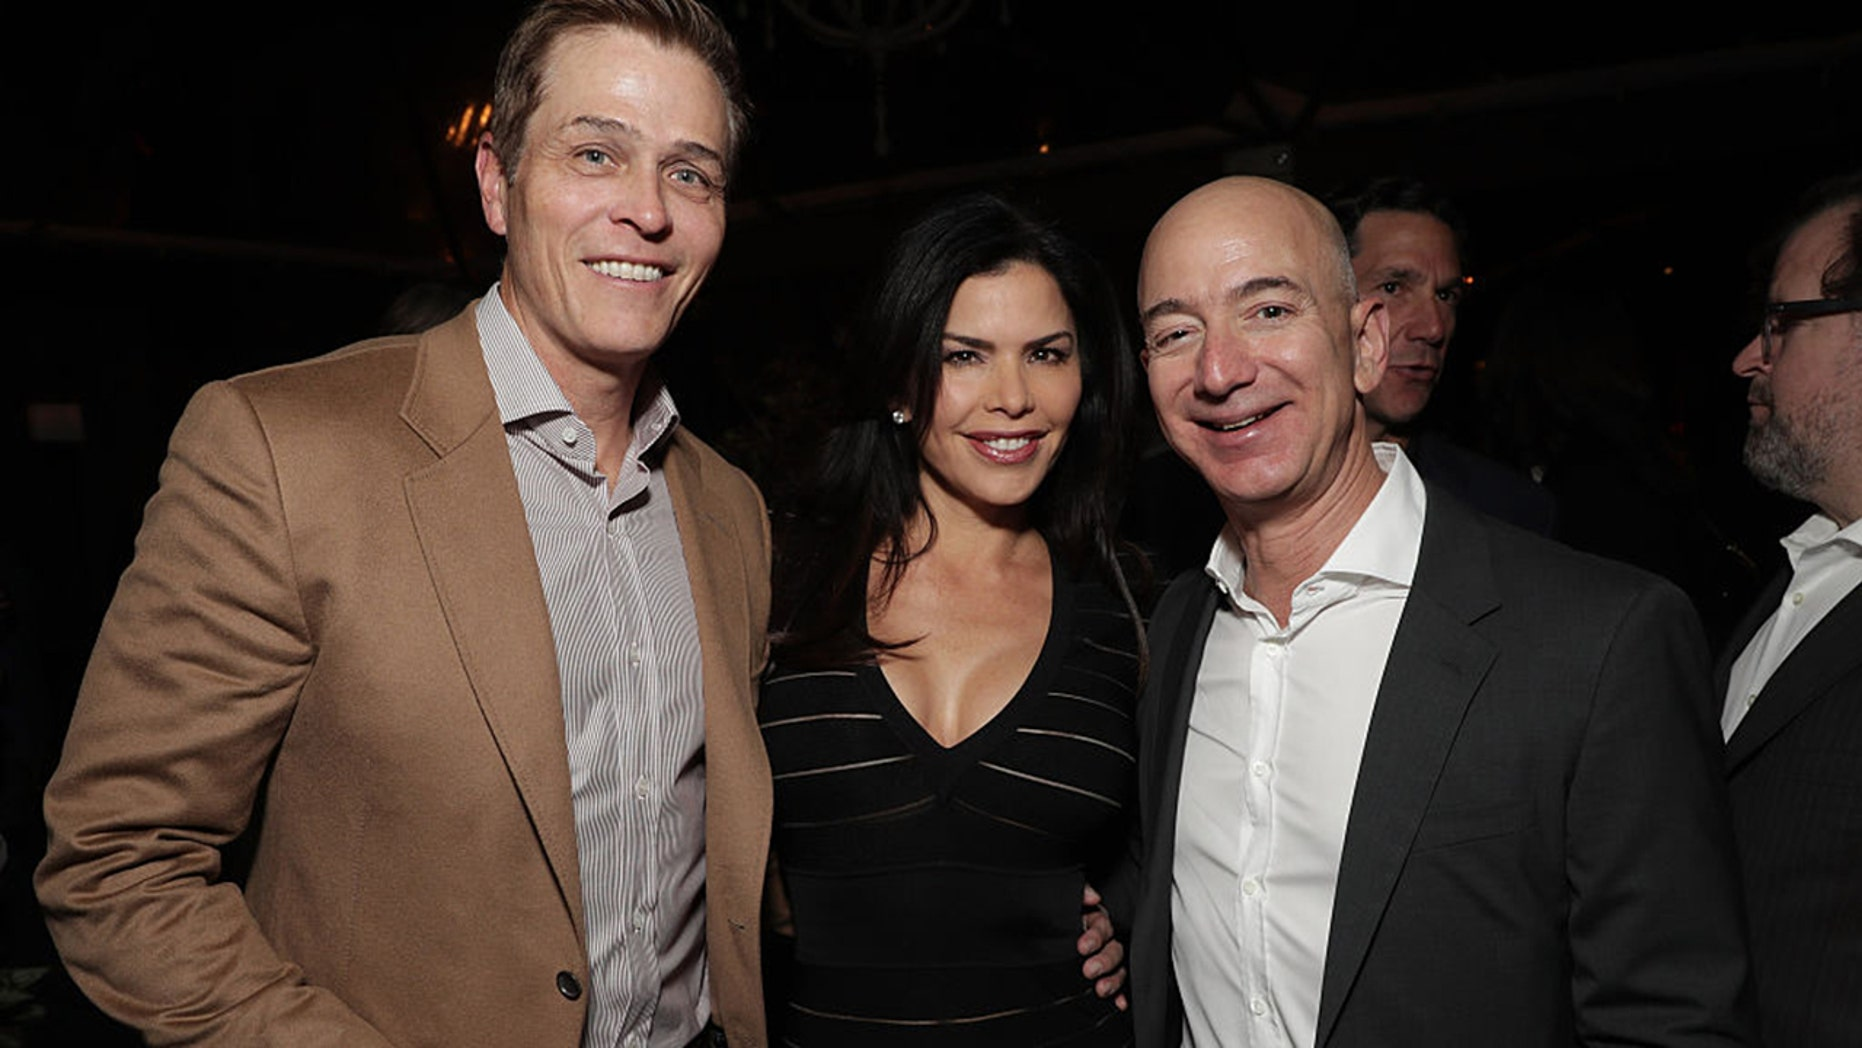 Divorcing Amazon CEO Jeff Bezos reportedly had no prenup